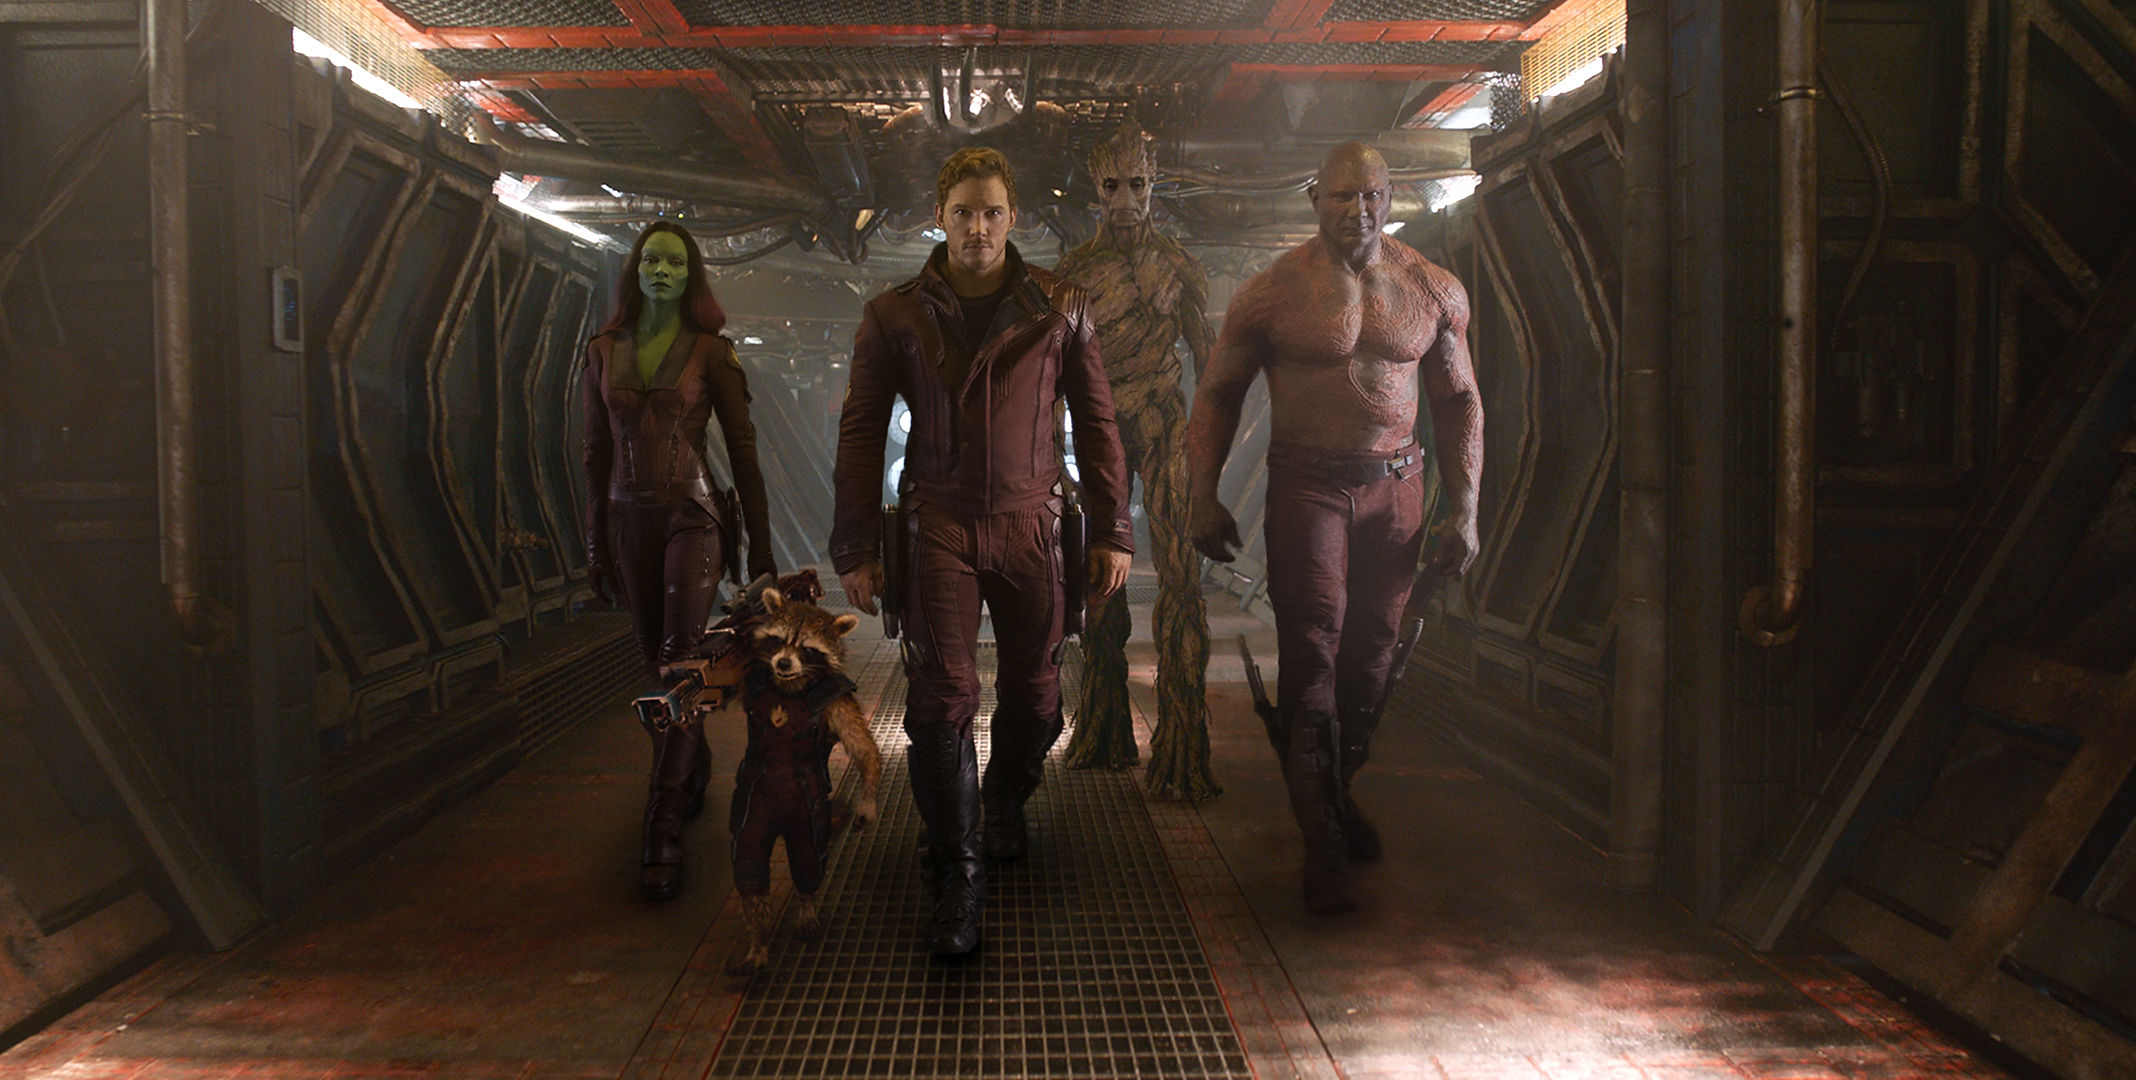 'Guardians of the Galaxy' Featurette: Marvel Goes to Space – /Film